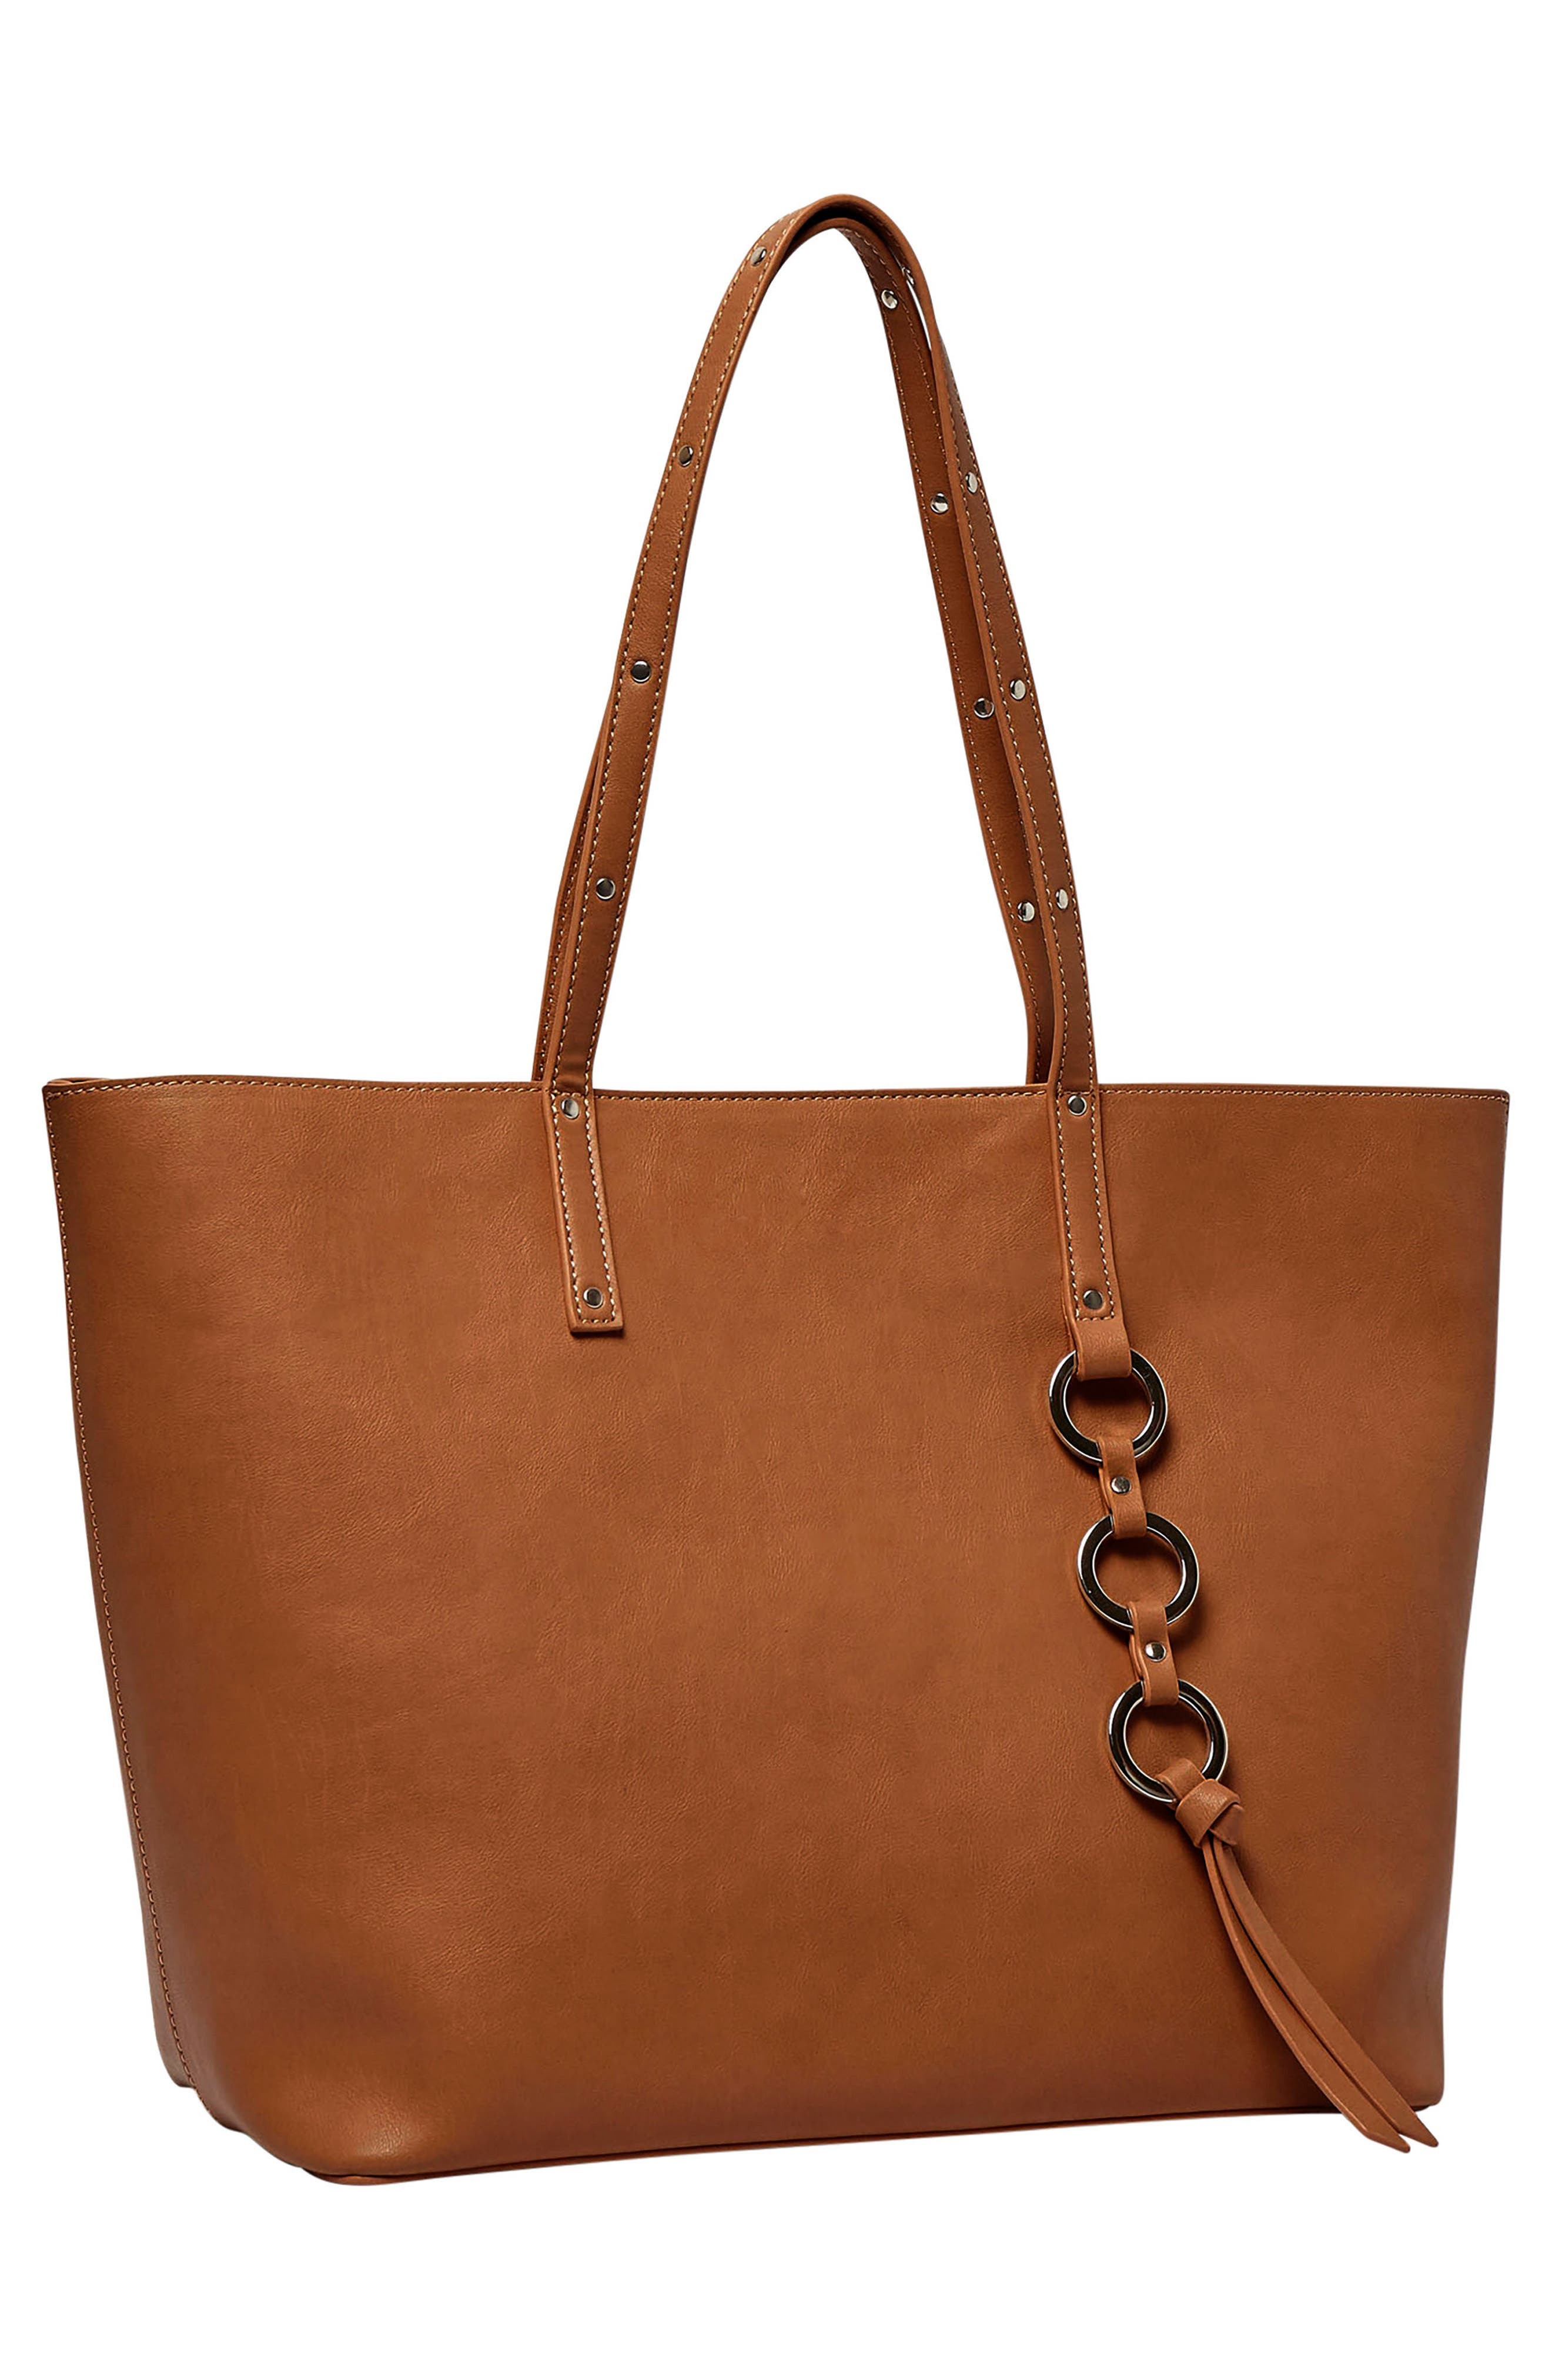 Wild Fire Vegan Leather Tote,                             Alternate thumbnail 9, color,